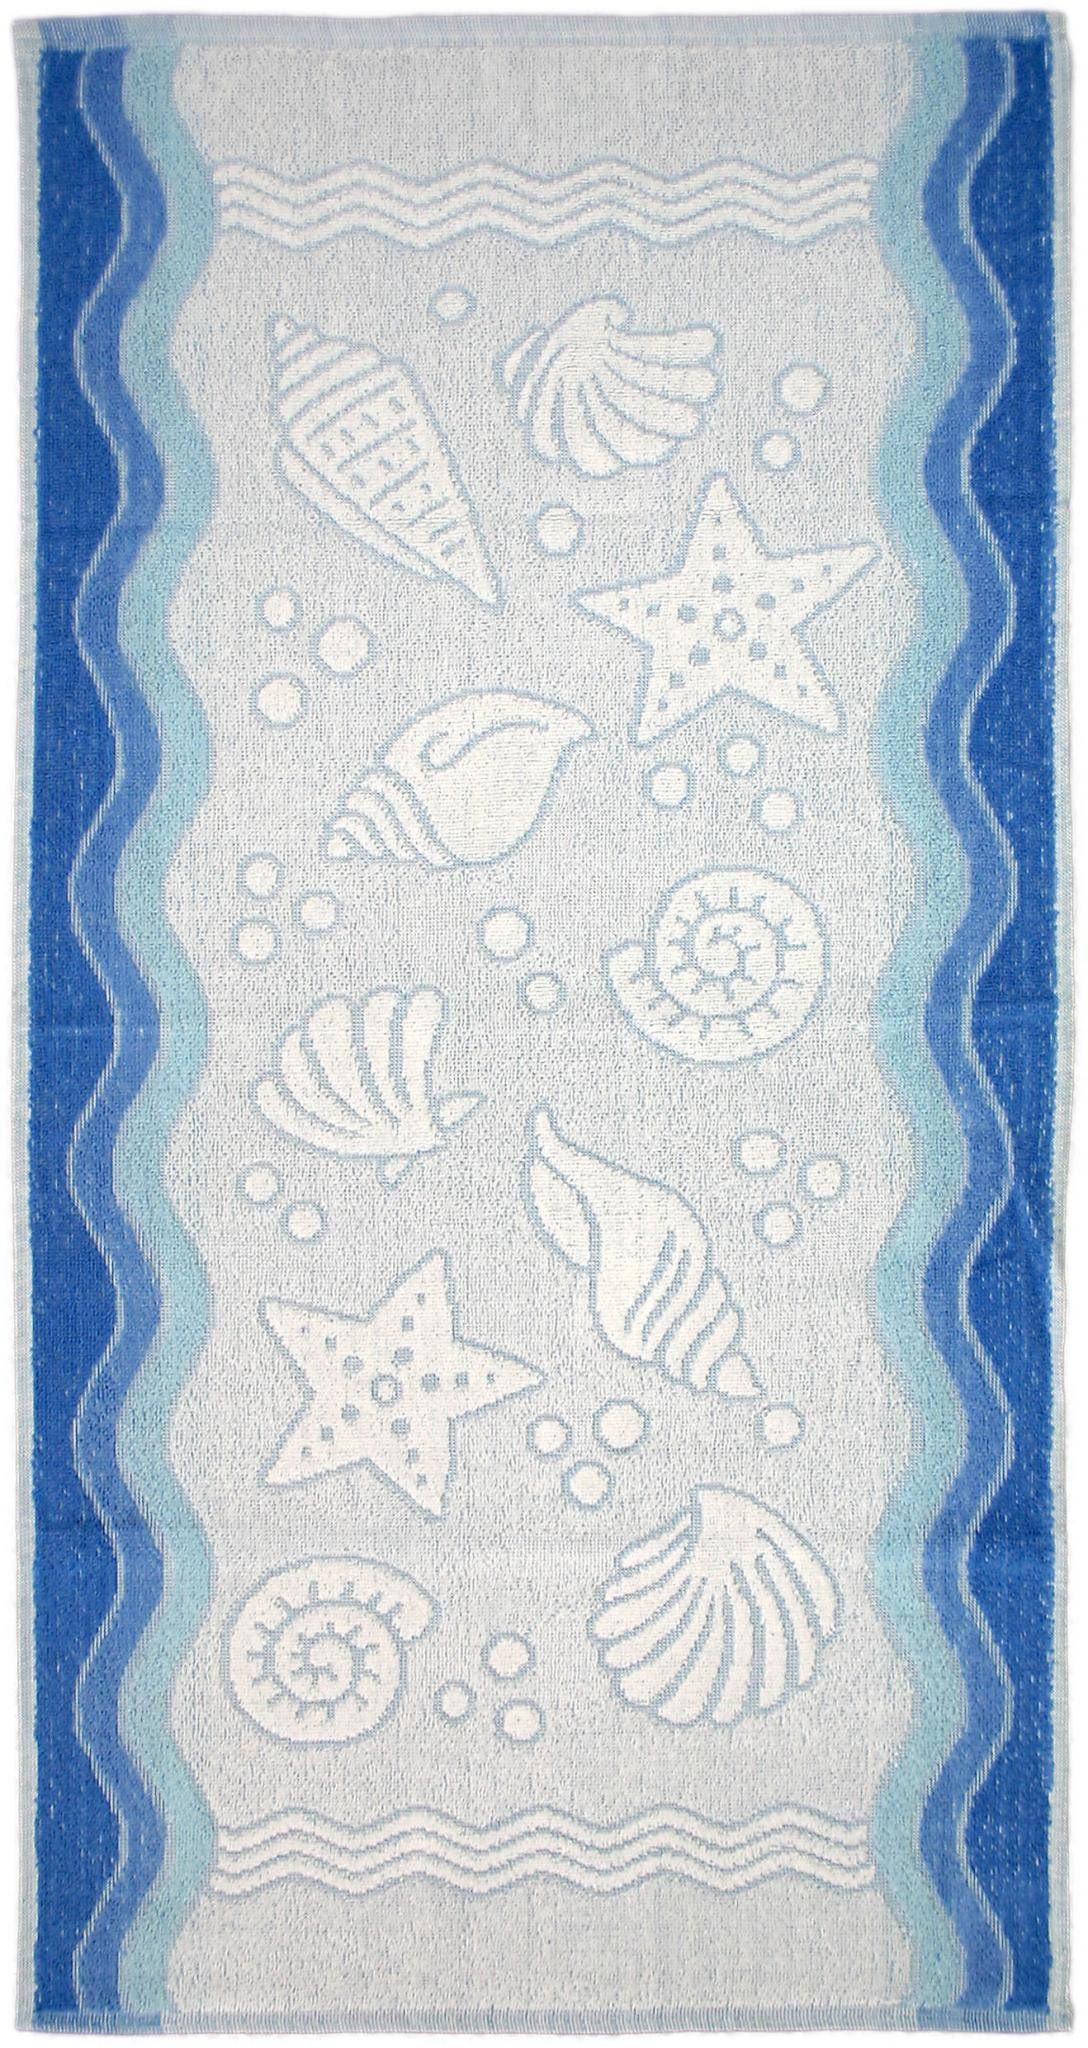 Ręcznik Flora Ocean - Niebieski - 70x140 - Everday Collection - Greno